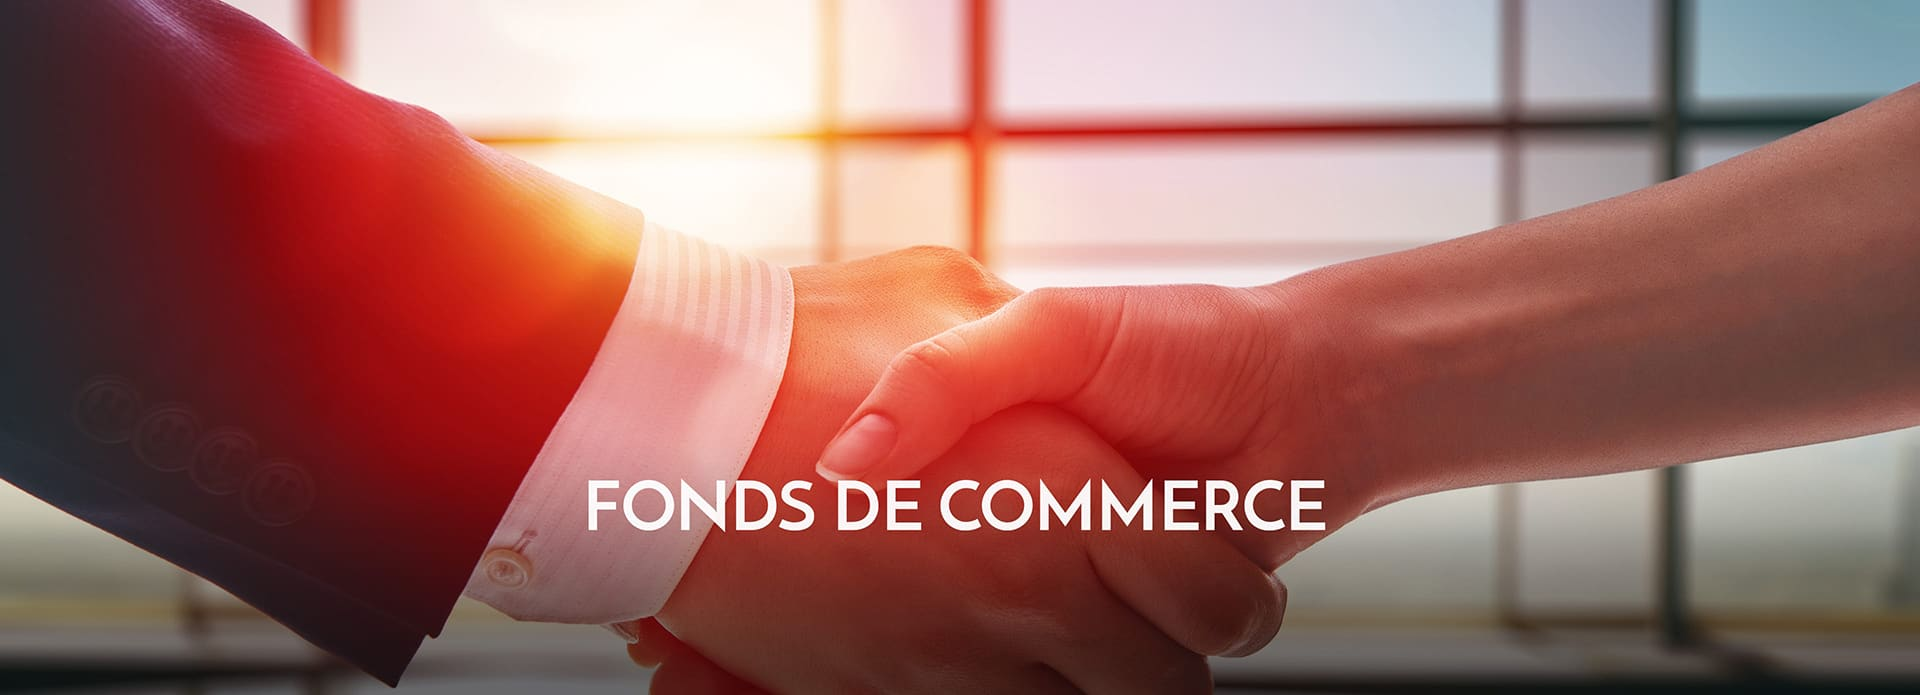 slide_fond de commerce